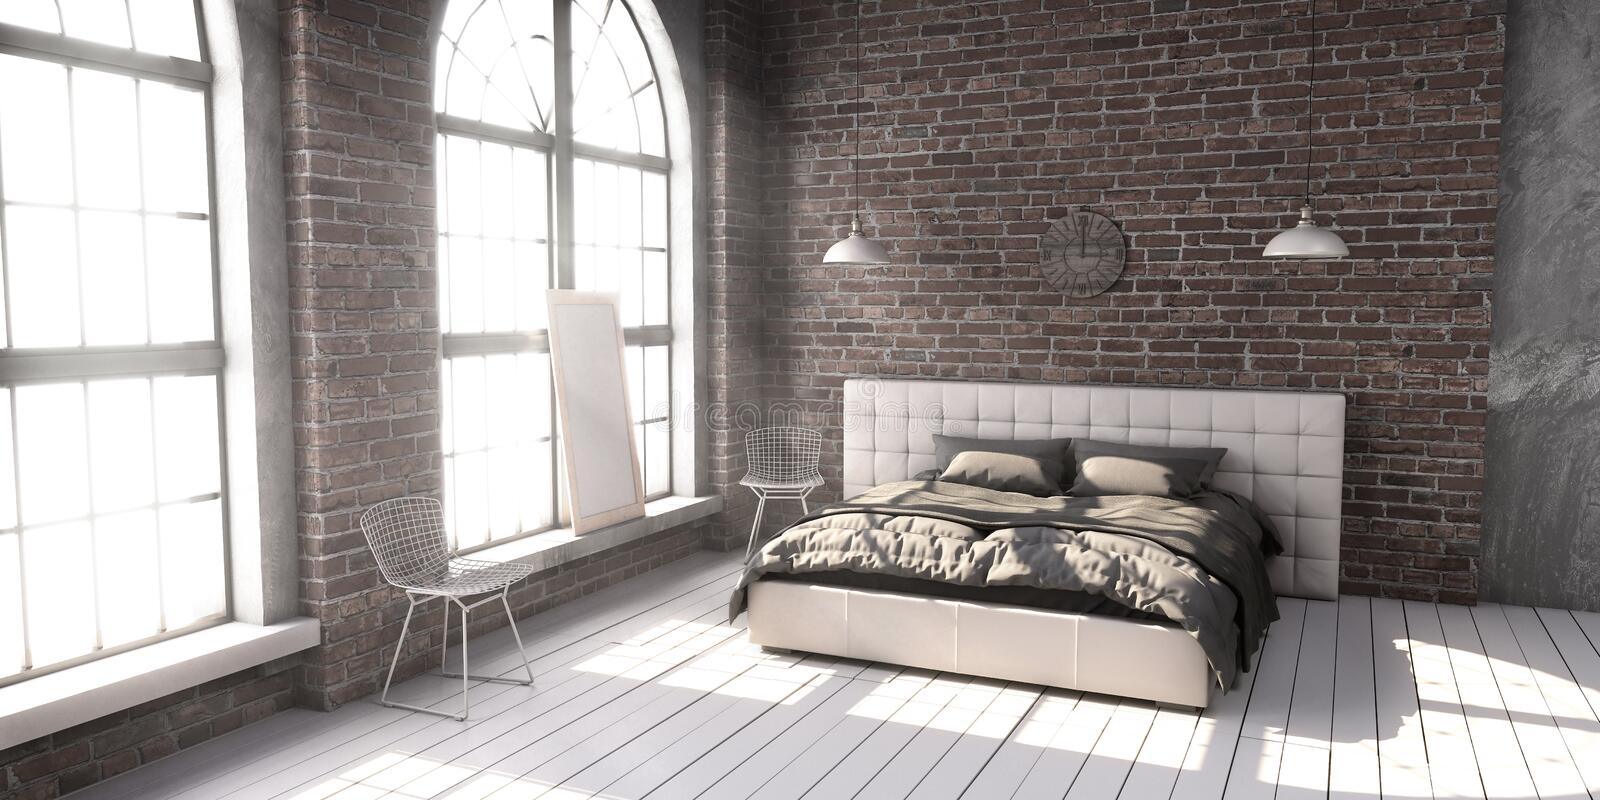 Quilted king size bed in the loft style bedroom. royalty free stock photos